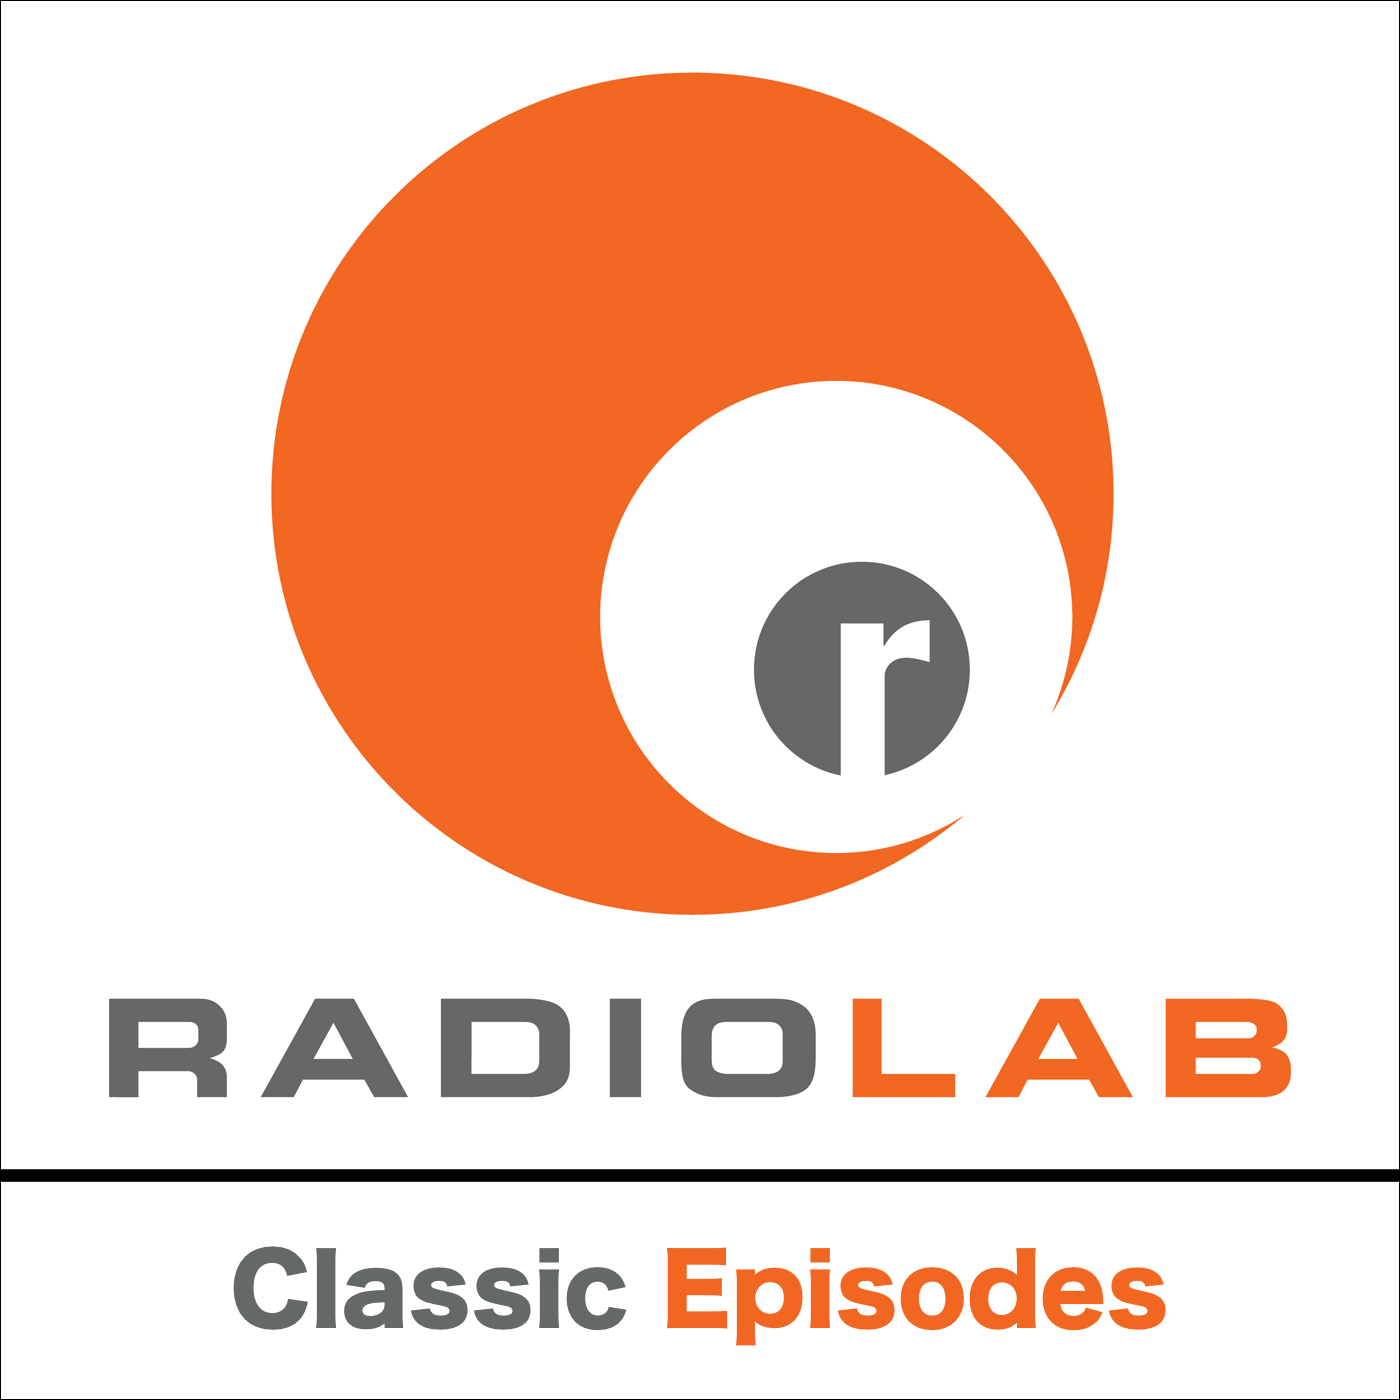 Radiolab album art